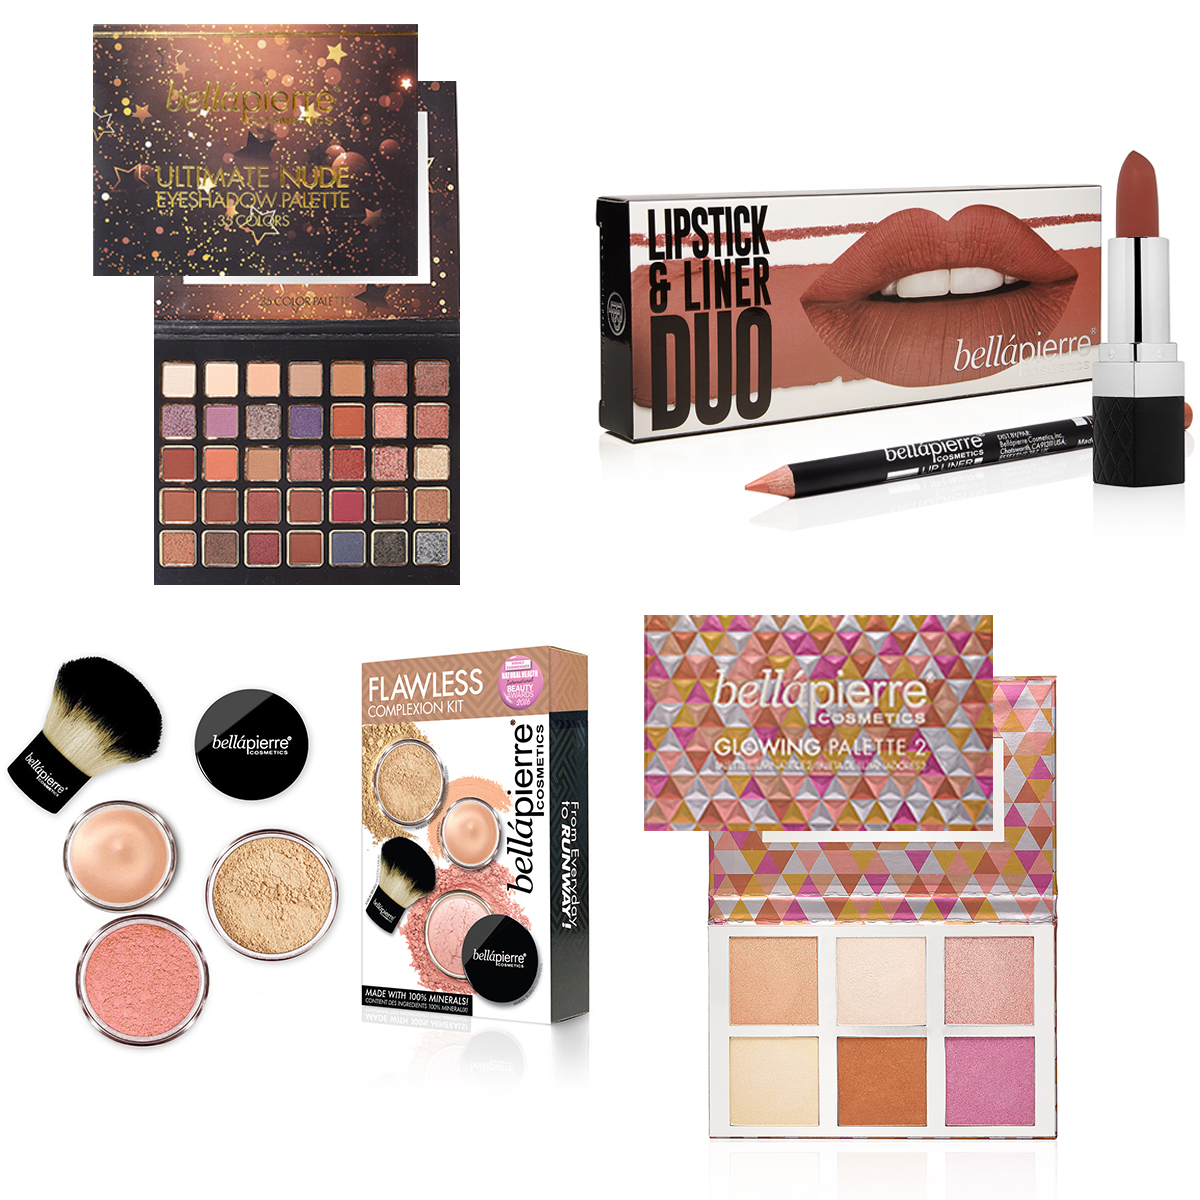 Natural Mineral Makeup Beauty Collection Sets And Palettes Header Image